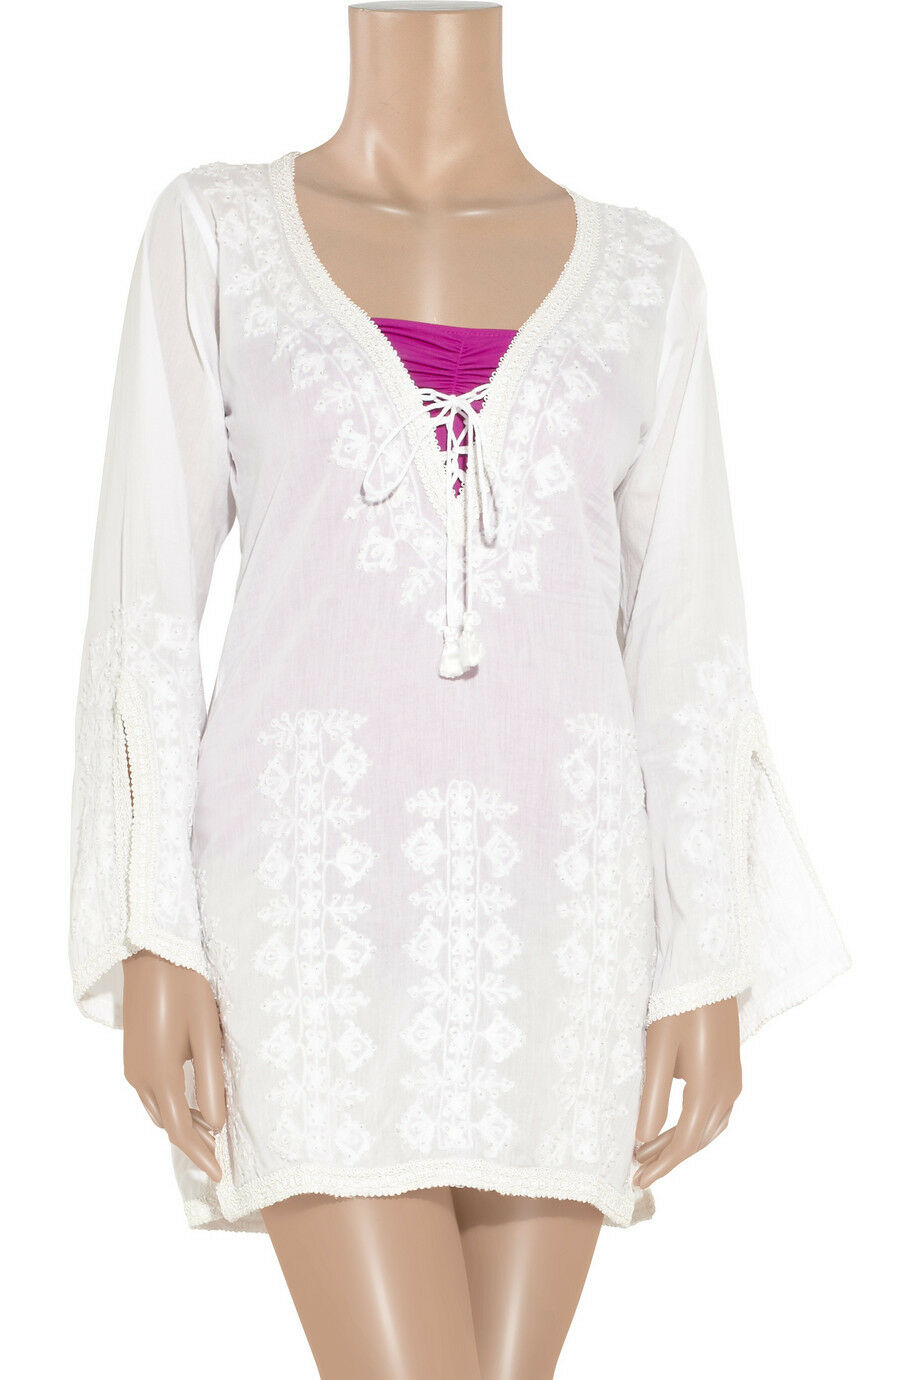 MELISSA ODABASH Weiß Embroiderot Kaftan Kleid Cover Up Beach Bikini BNWT S M L